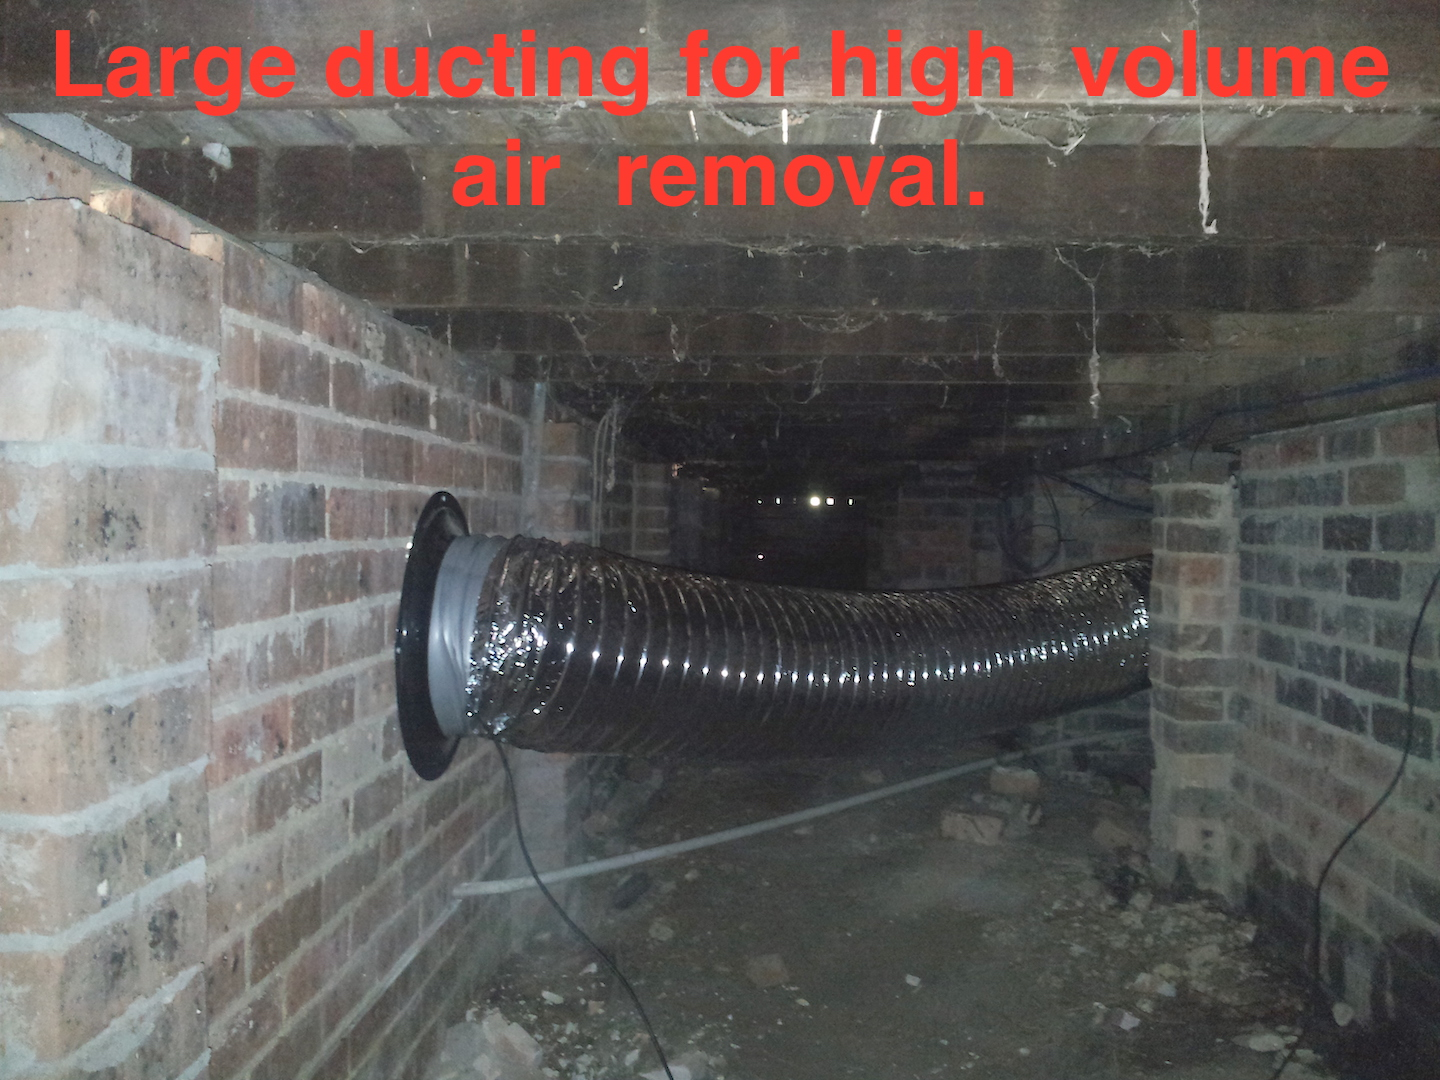 High volume ducting